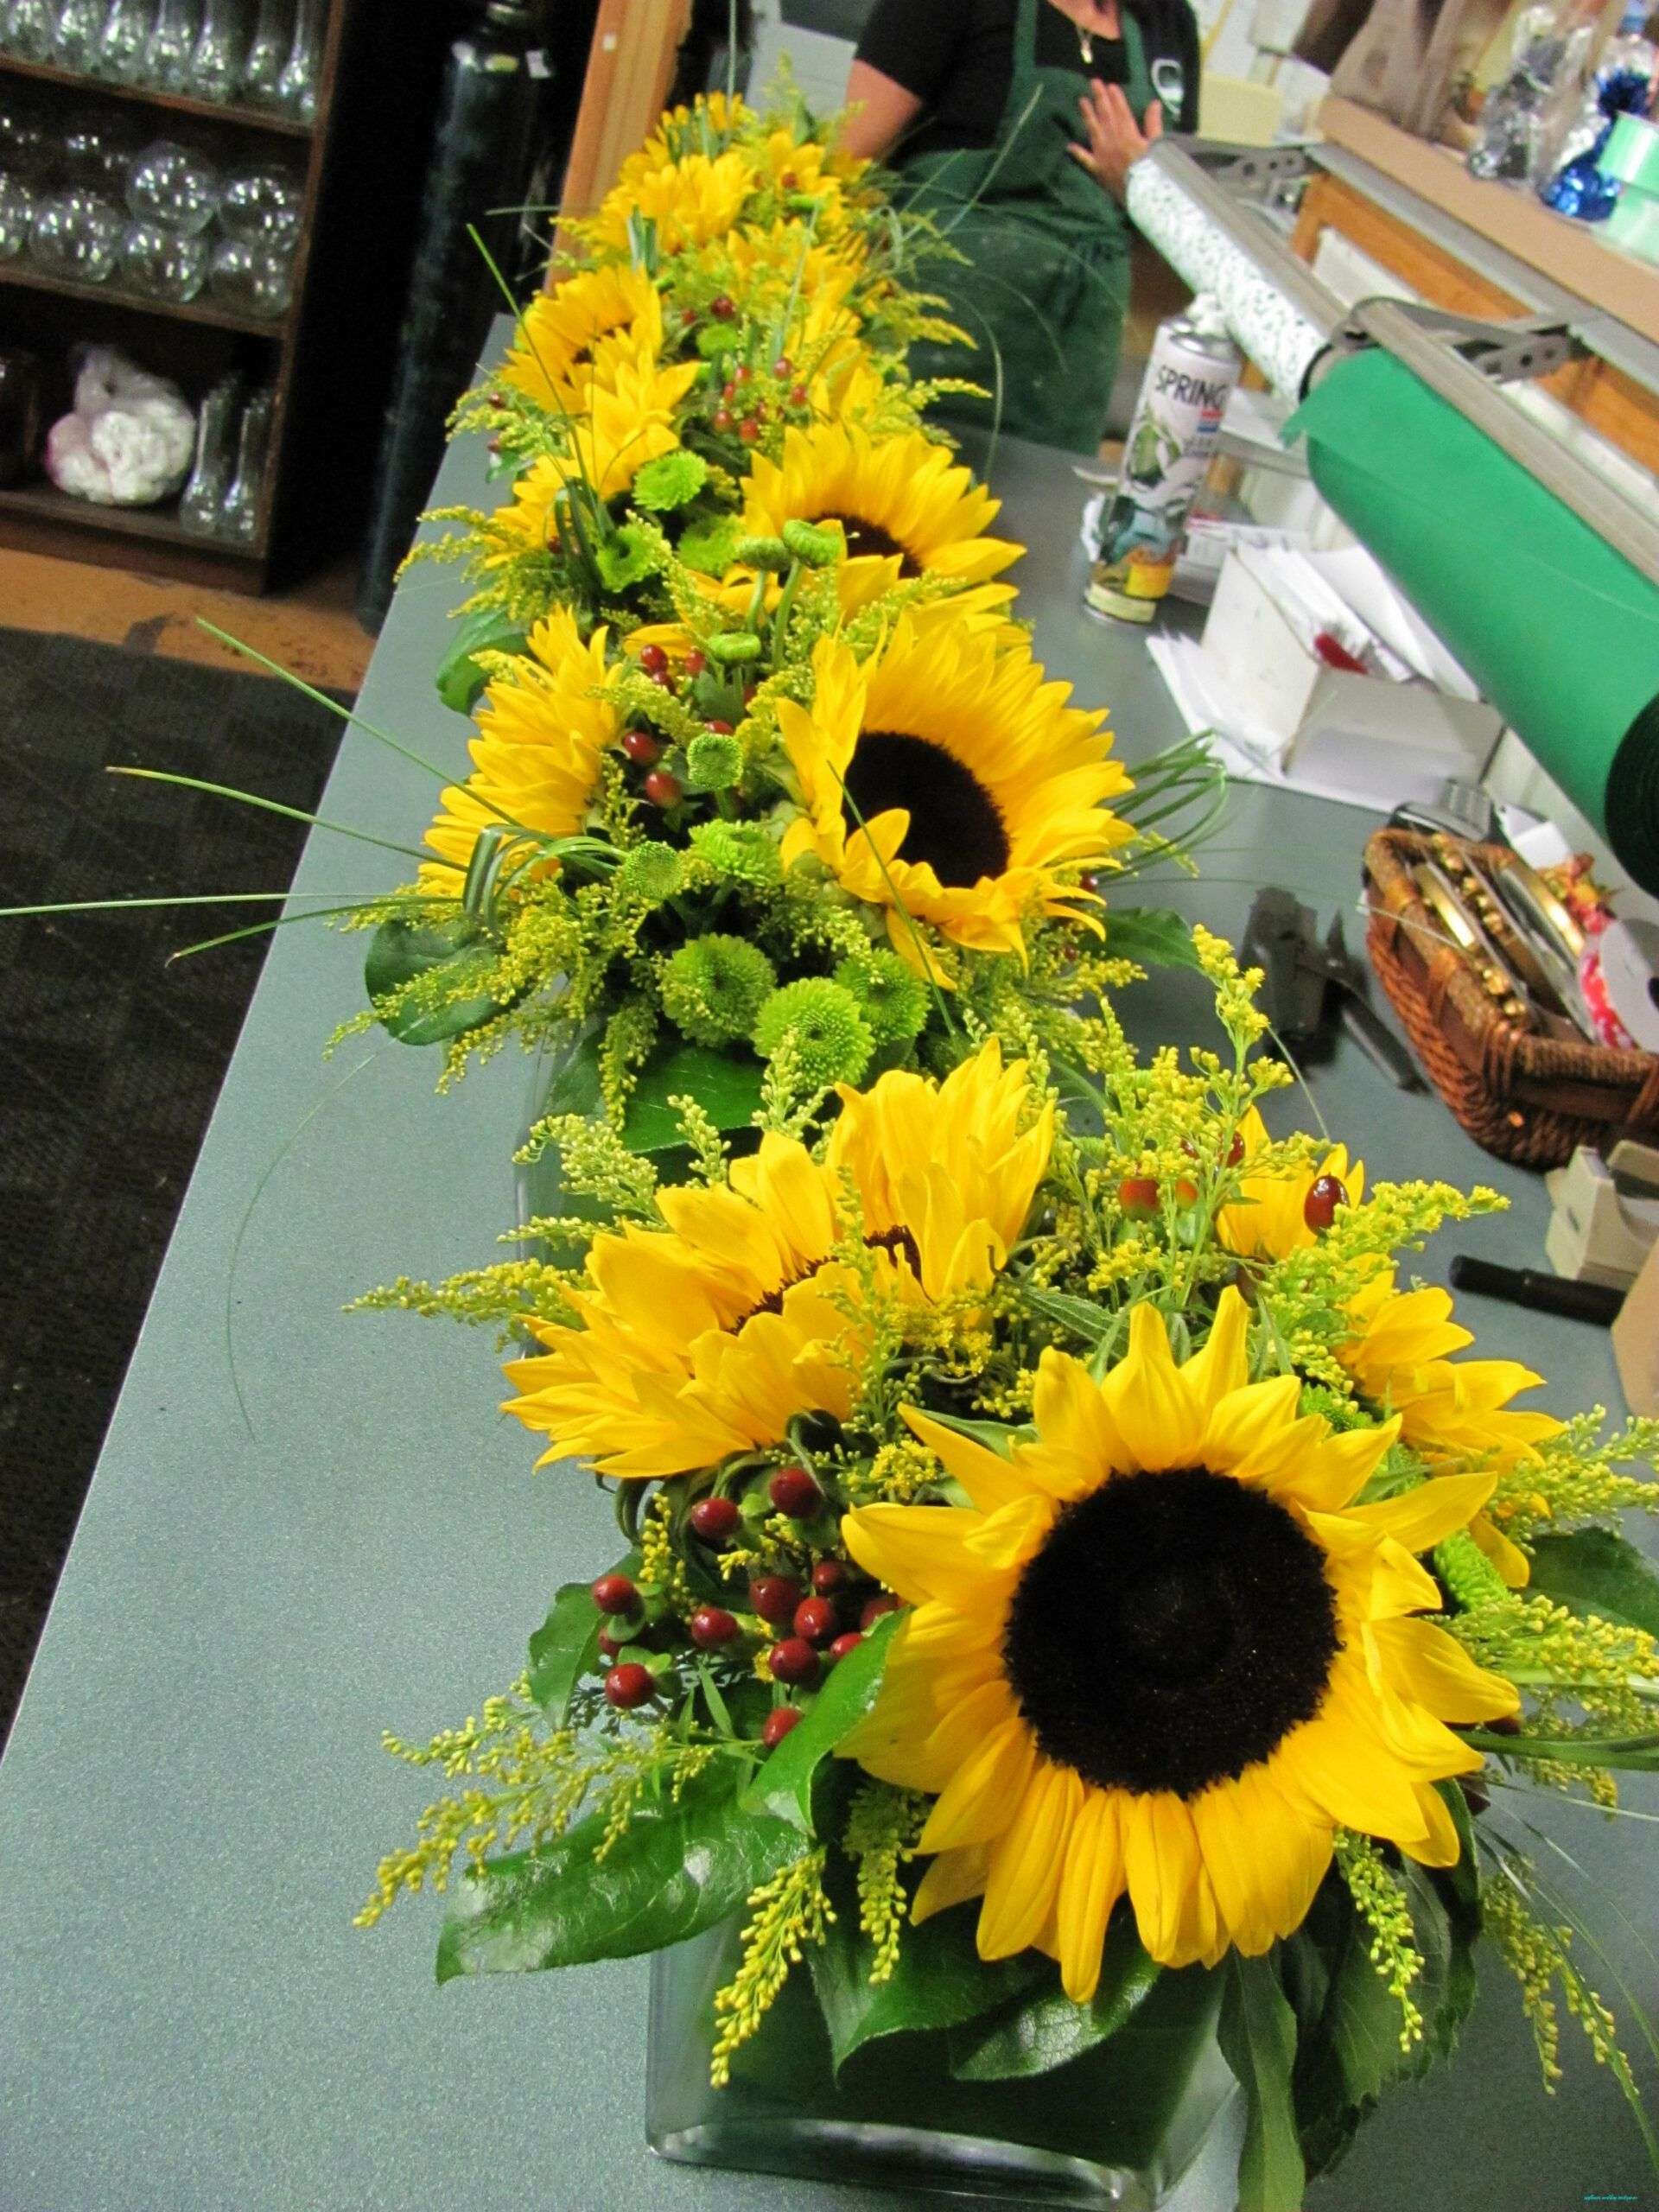 Pin by Kelly Price on Center pieces in 2020 Sunflower